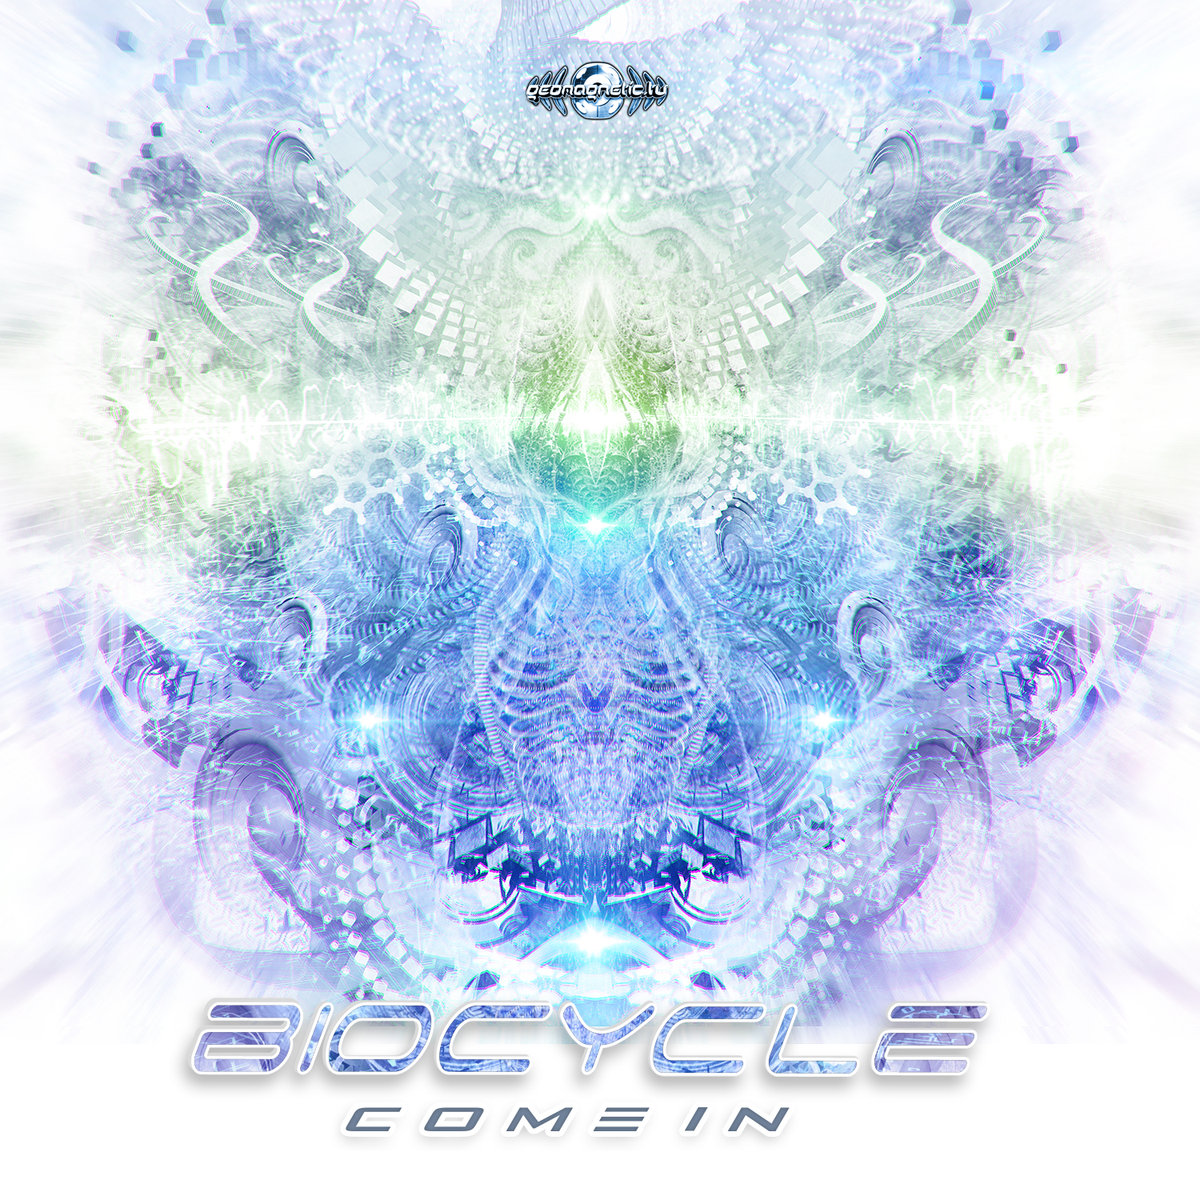 Biocycle - Come In @ 'Come In' album (electronic, geomagnetic)